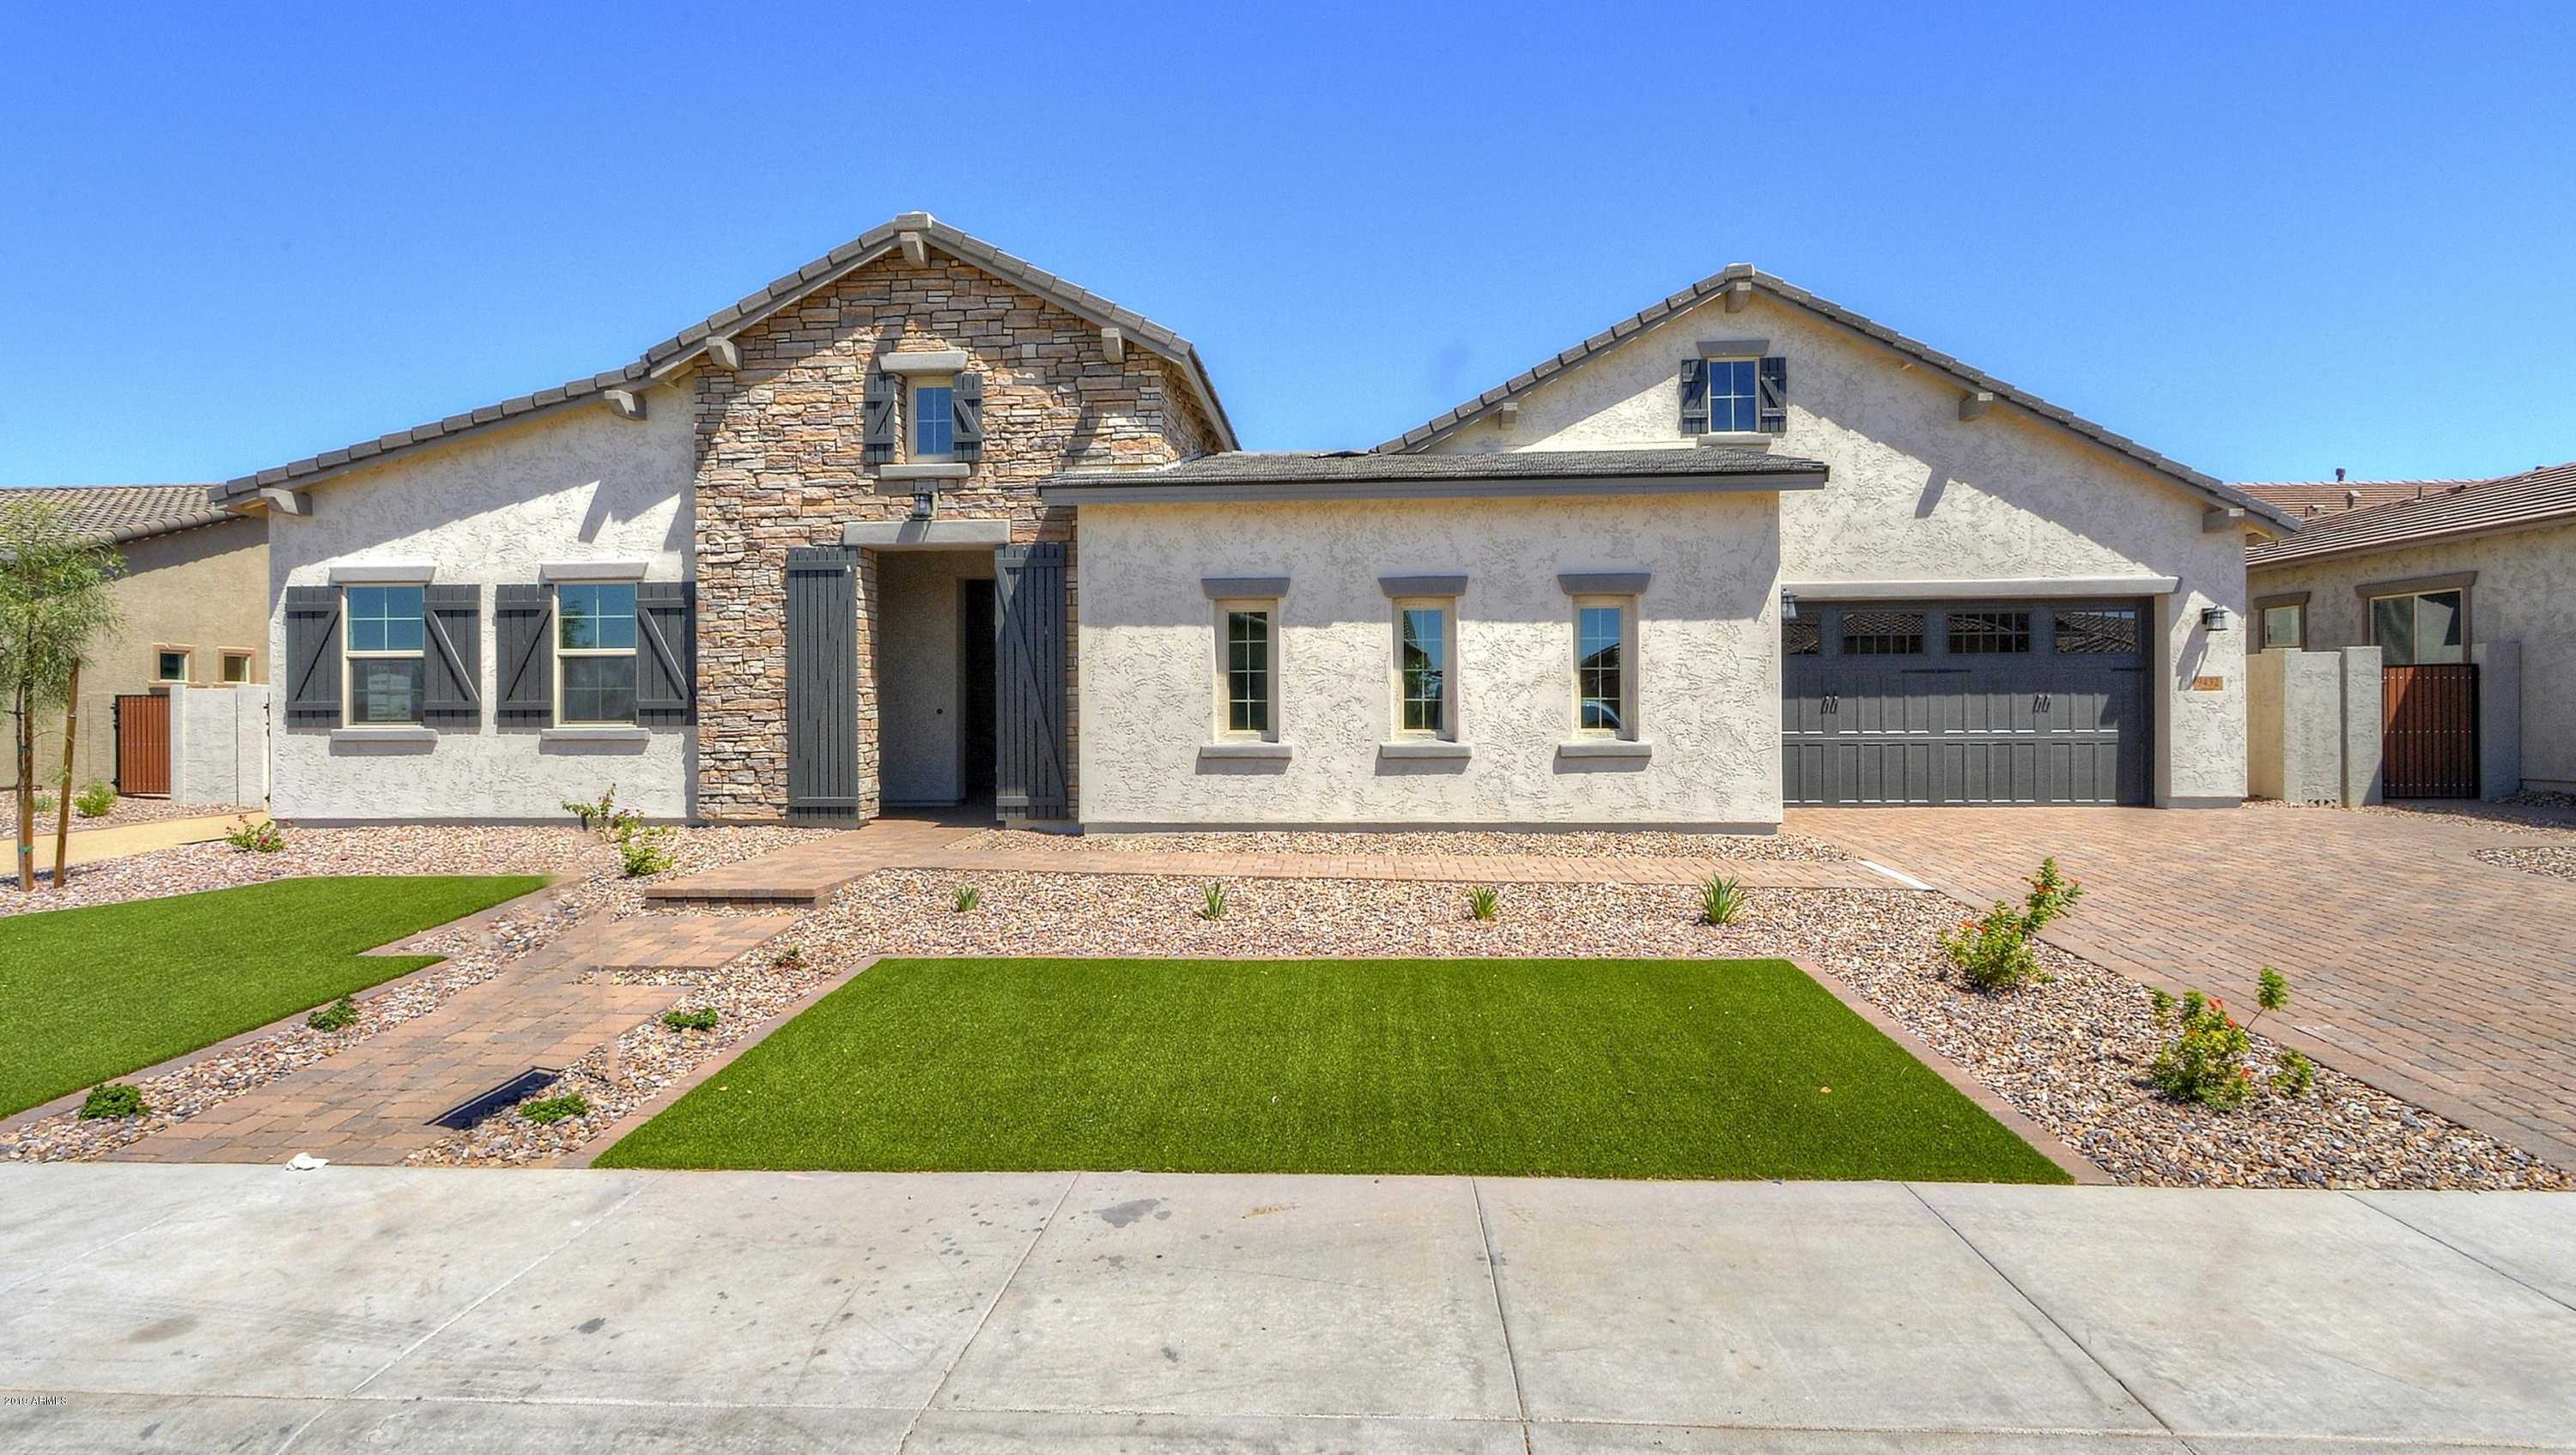 $769,900 - 4Br/5Ba - Home for Sale in Meadows Parcels 1 And 3 Phase 1, Peoria